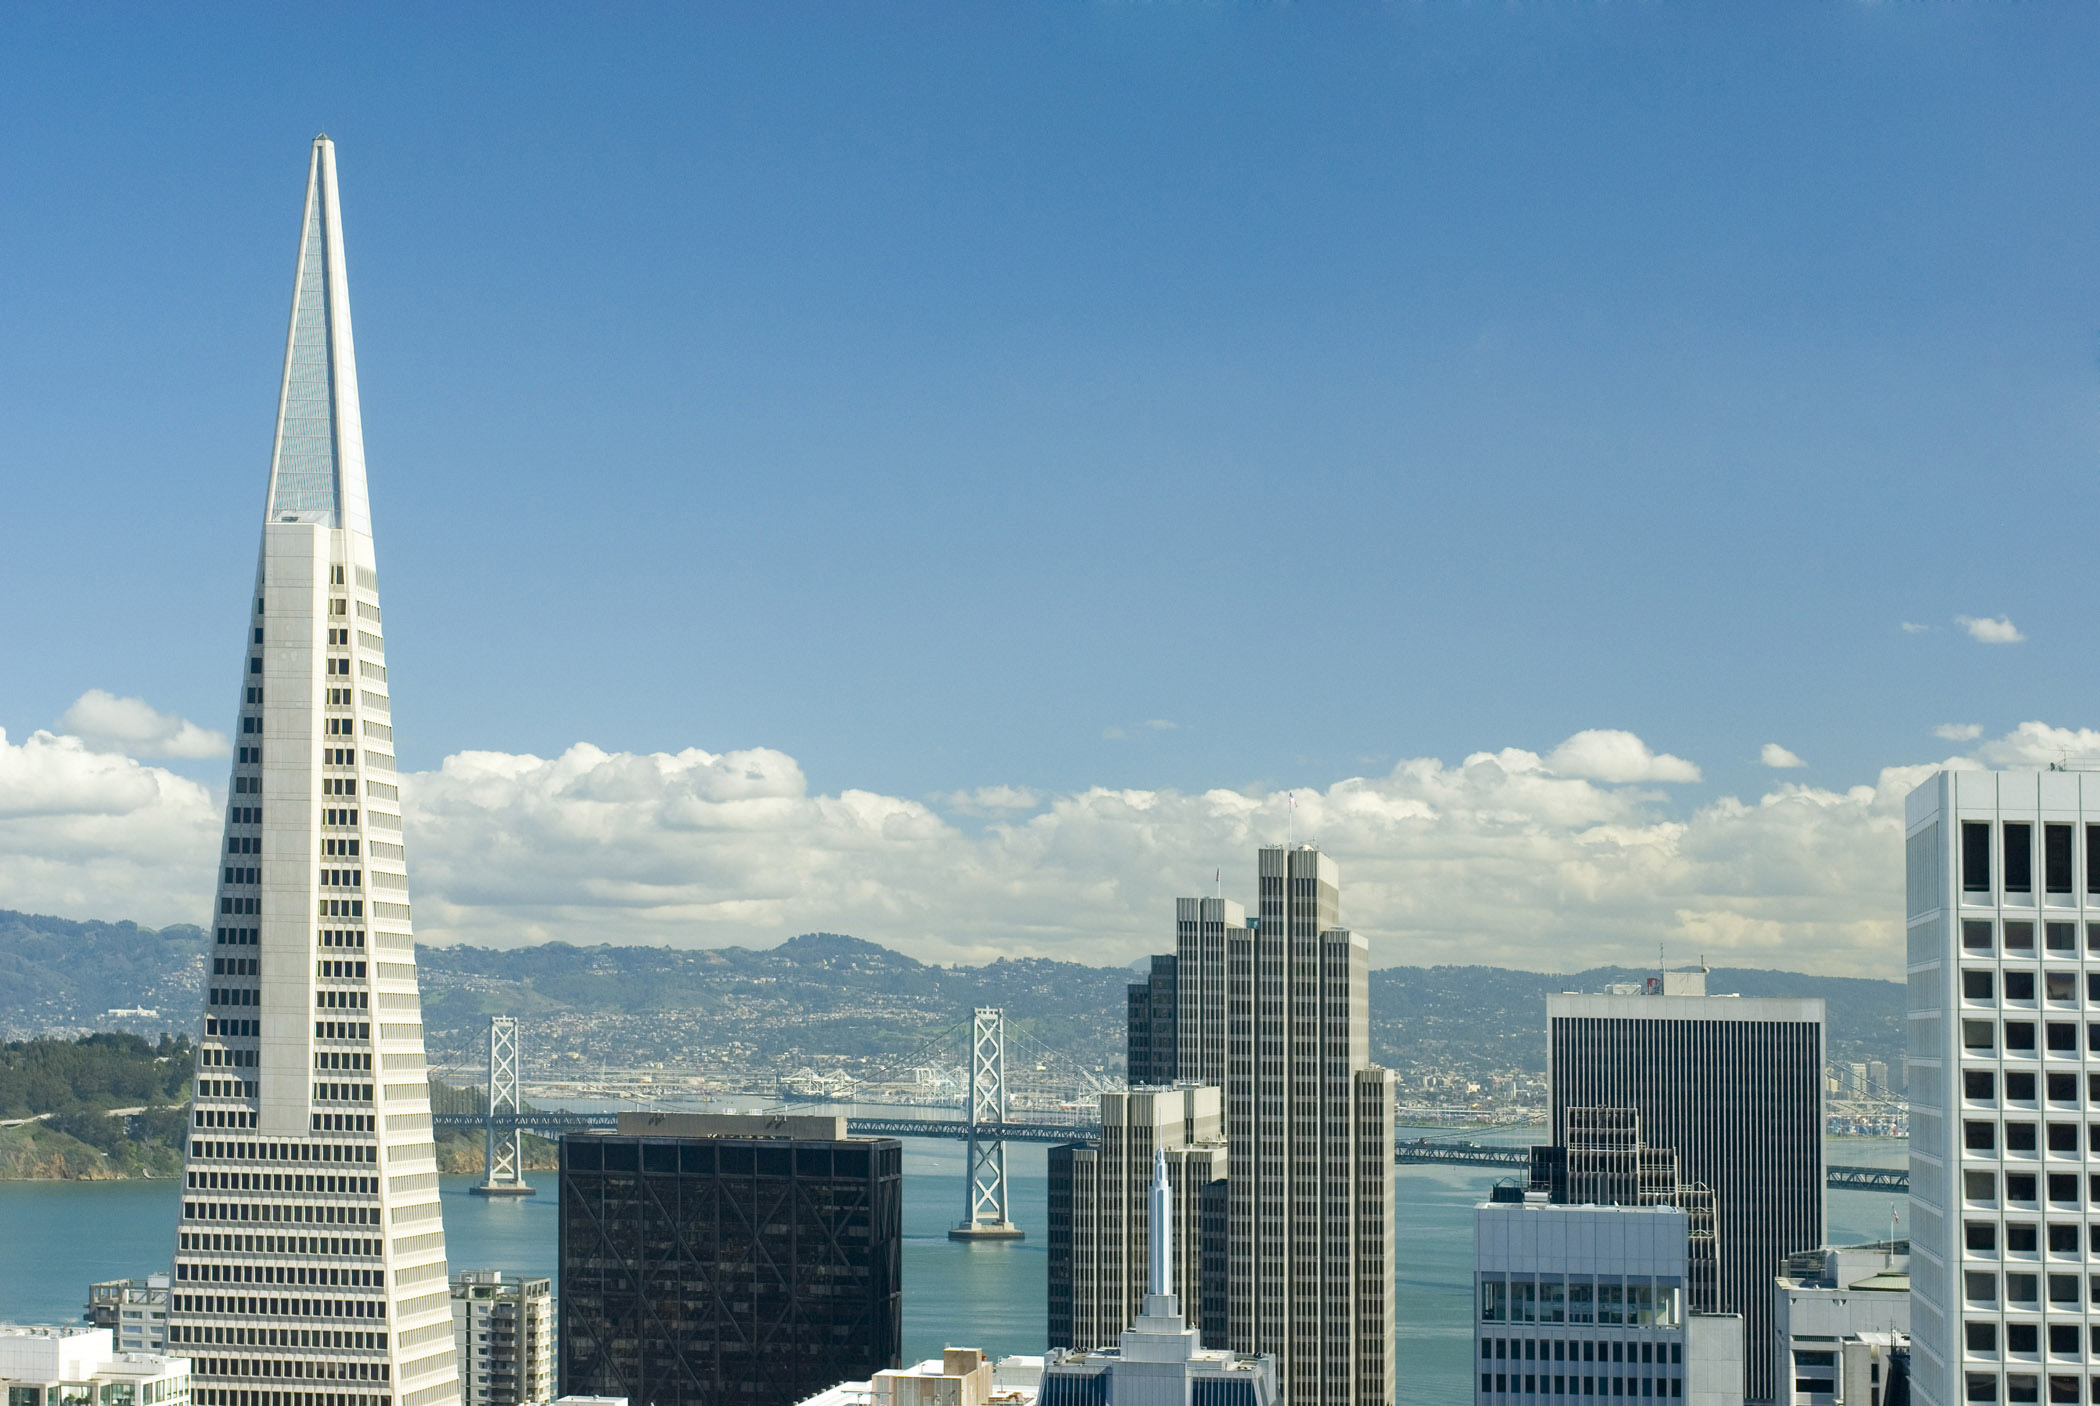 City Building Infrastructures at San Francisco with Long Bridge View at Afar. Isolated on Light Blue Sky Background.